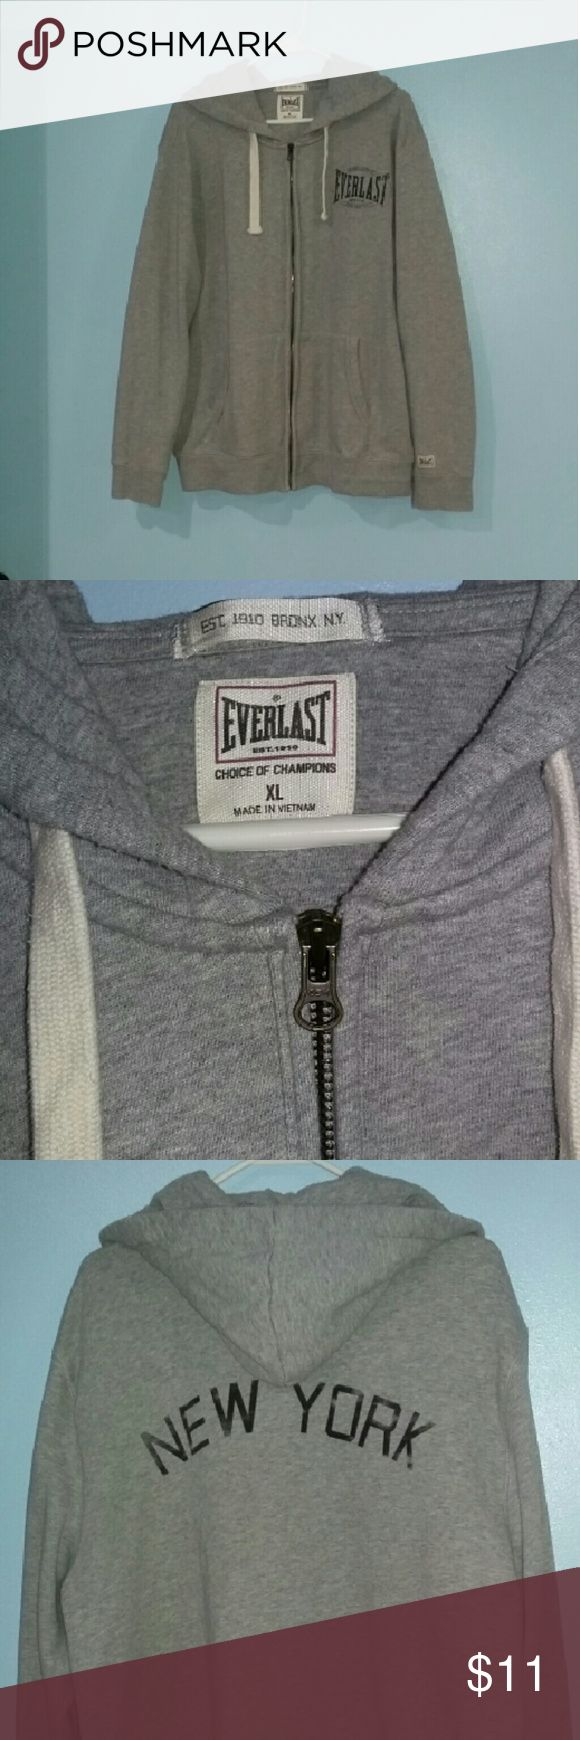 Men's Everlast Hoodie Men's Everlast Choice of Champions Est.1910 grey hooded sweater with circular Boxing Equipment Everlast slightly faded logo on the upper left side.  ✔Has drawstrings through the hood.  ✔Functional zipper!  ✔NEW YORK printed in large letters on the back.  ✔Small Everlast logo patch on the sleeve.  ✔Great condition! Gently used. NO stains, snags, or rips. ✔Size XL Brand is Everlast. Listed as Nike for exposure. Offers are welcome!! Nike Sweaters Zip Up